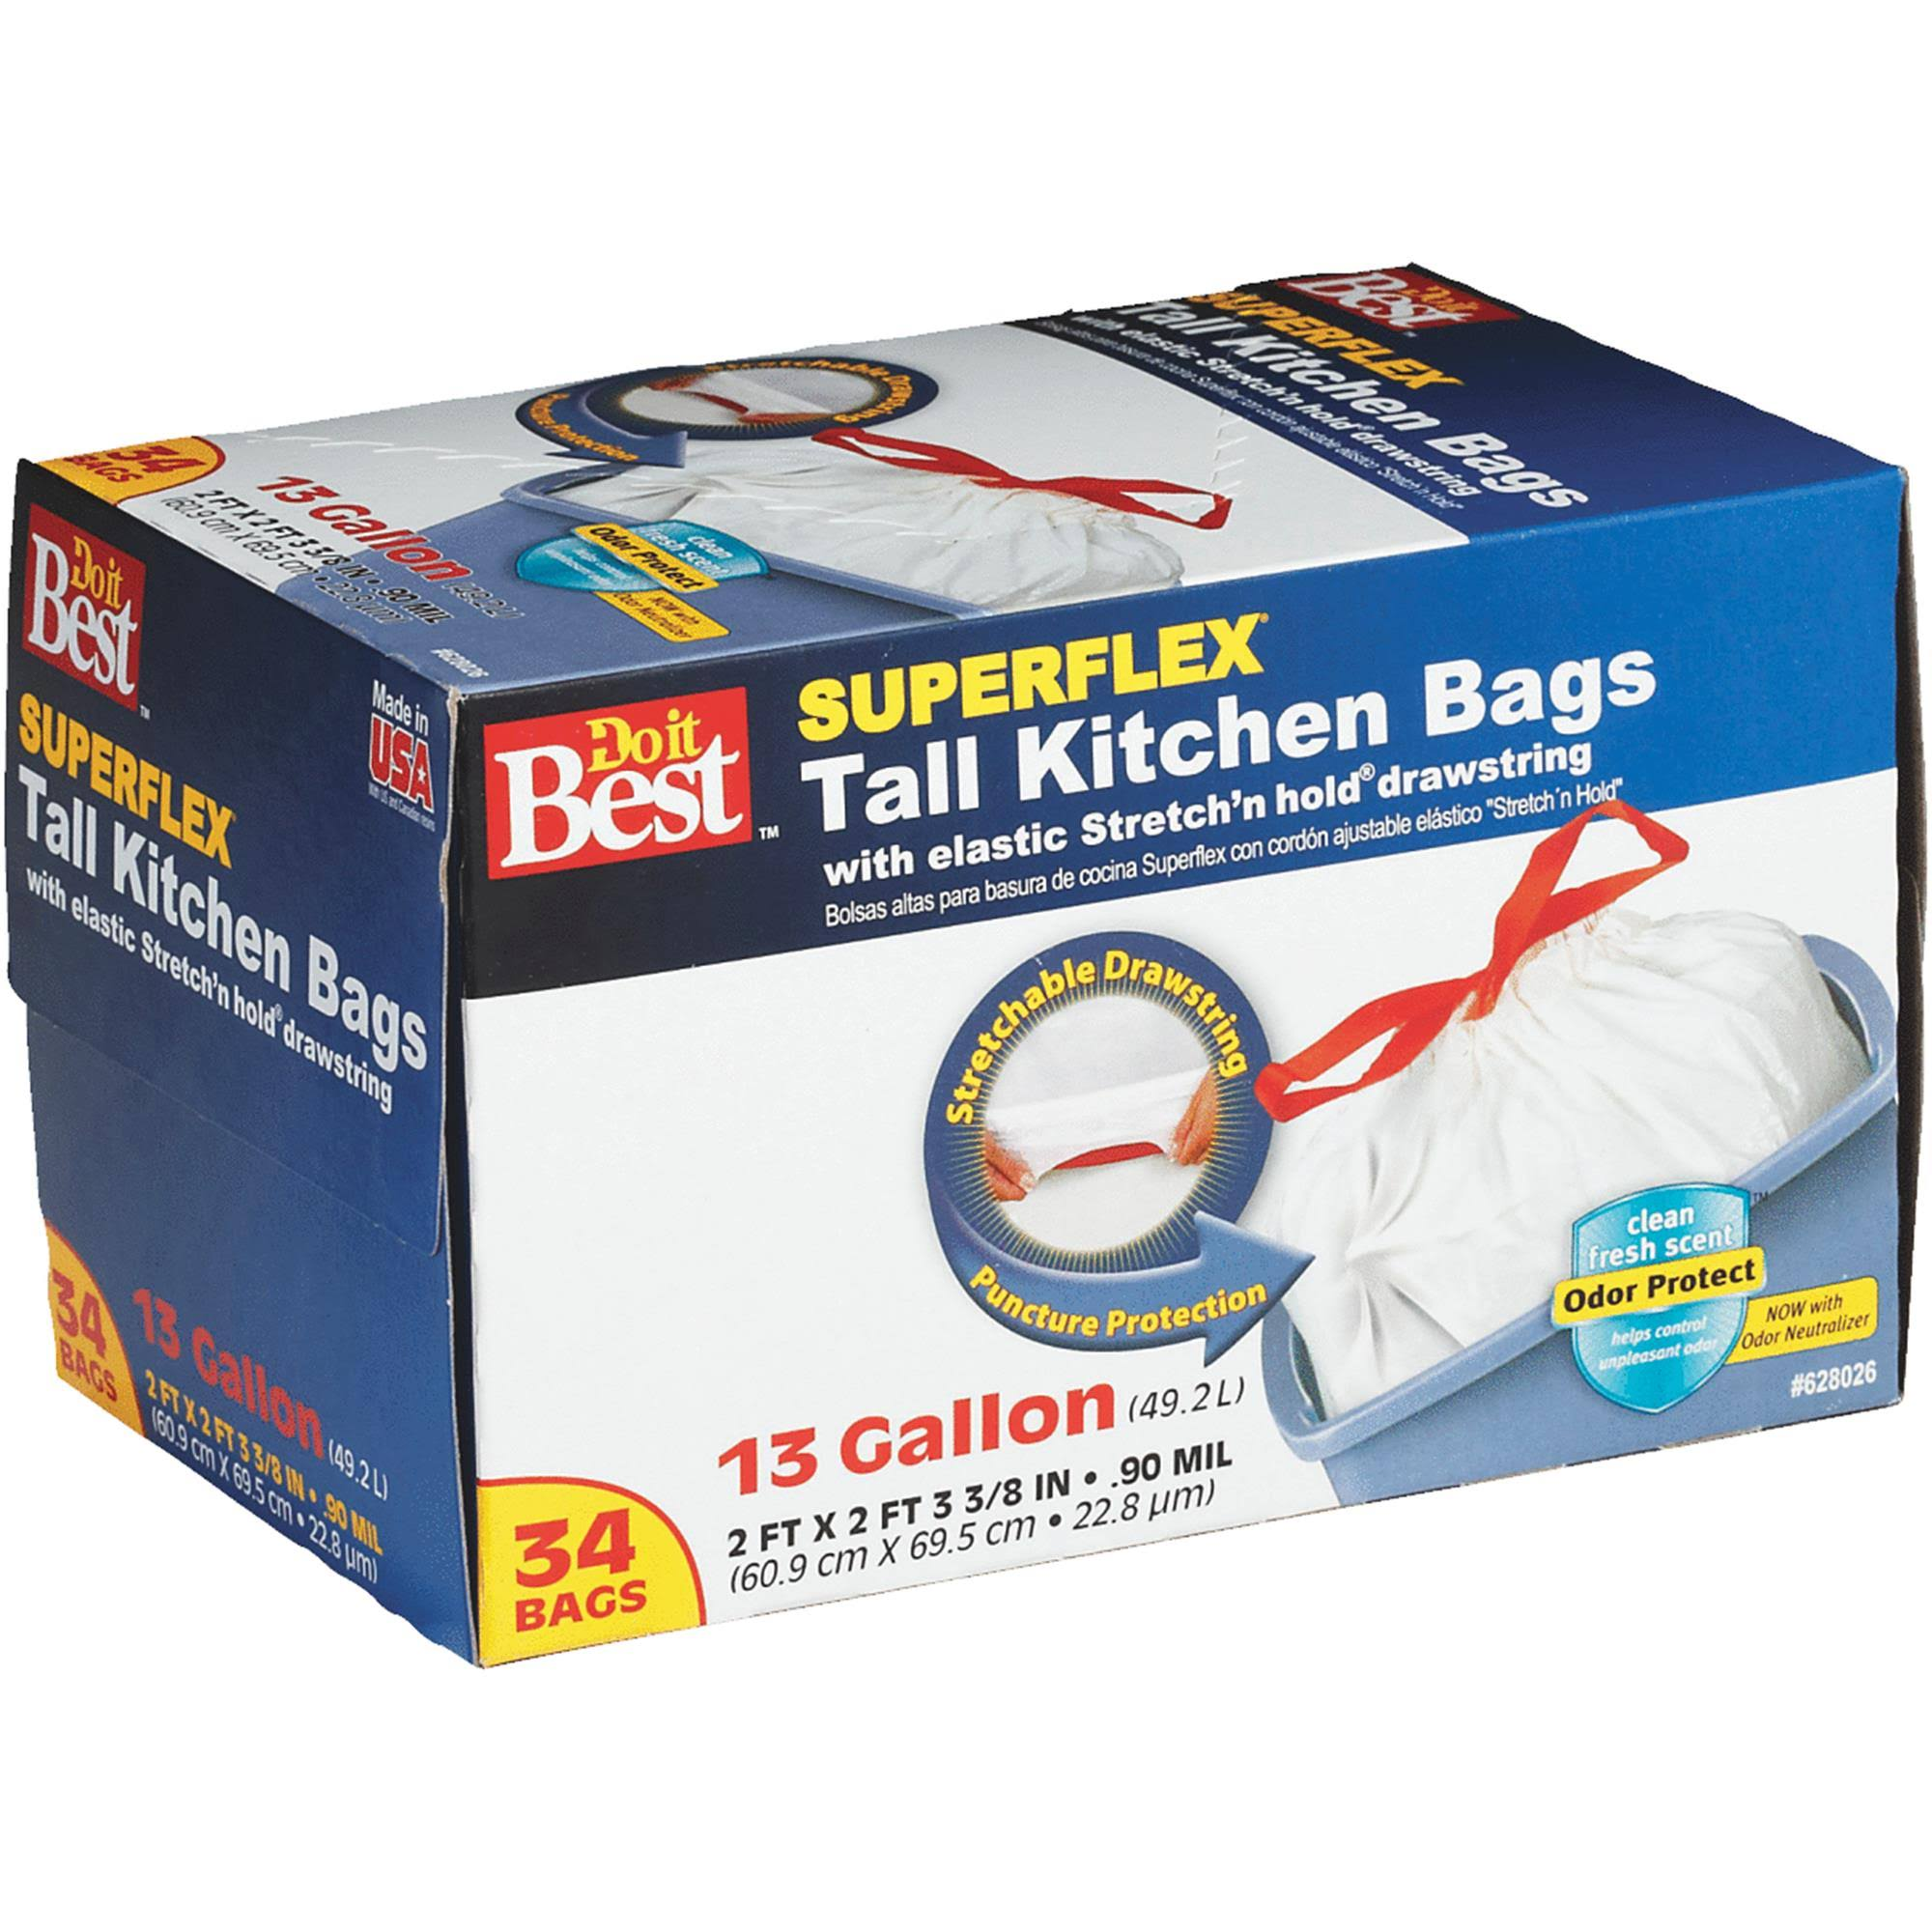 Do It Best Superflex Tall Kitchen Trash Bag - 34 Bags